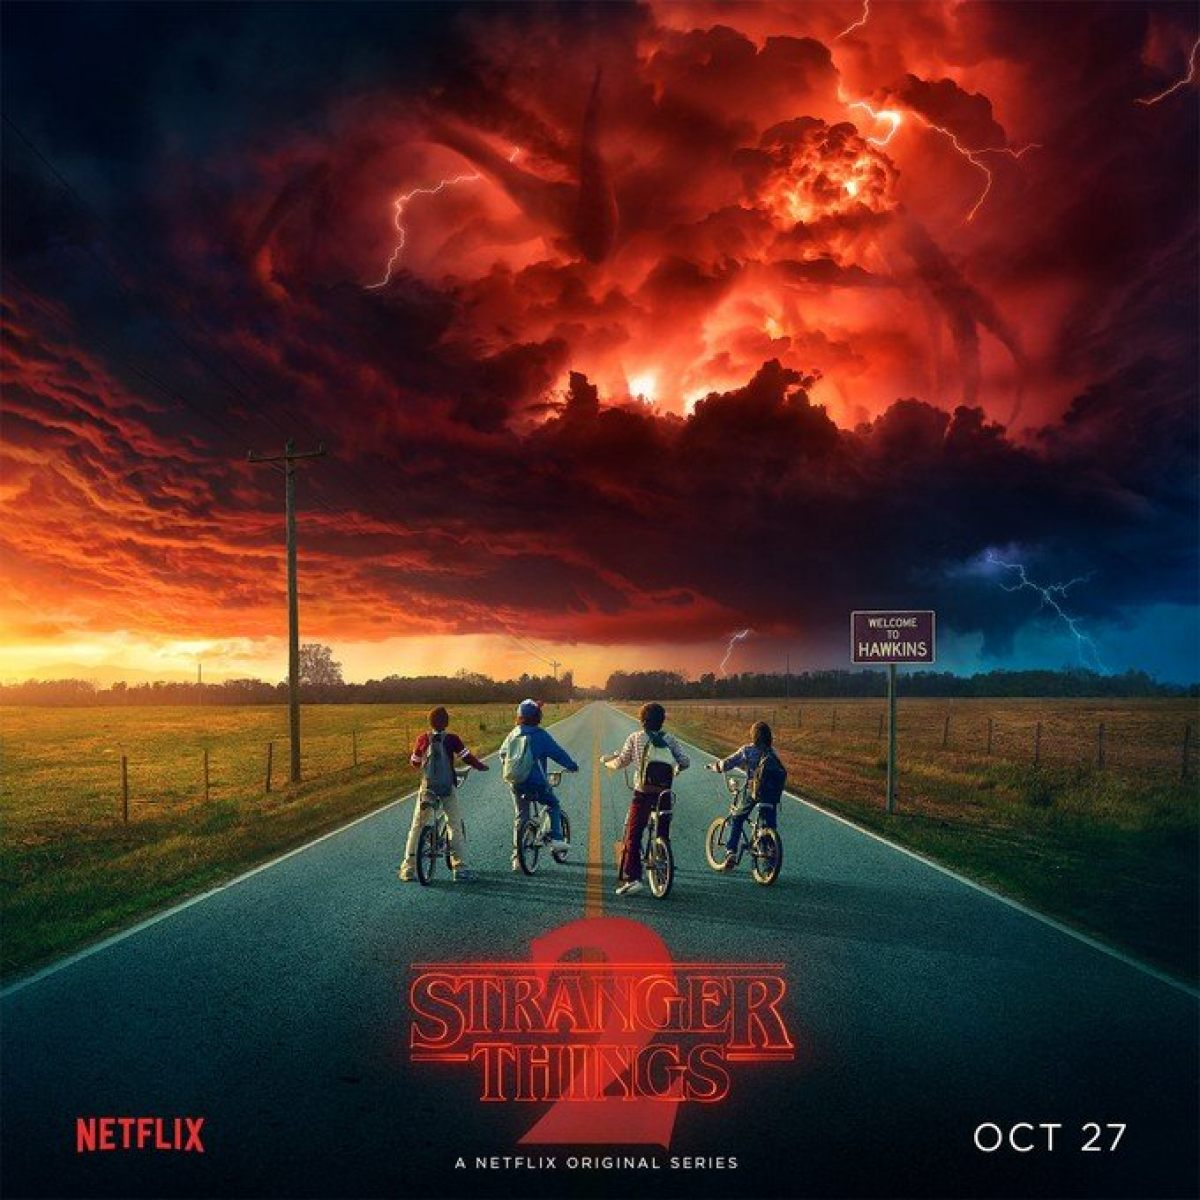 STRANGER THINGS Season Two Gets A Lovecraftian New Poster